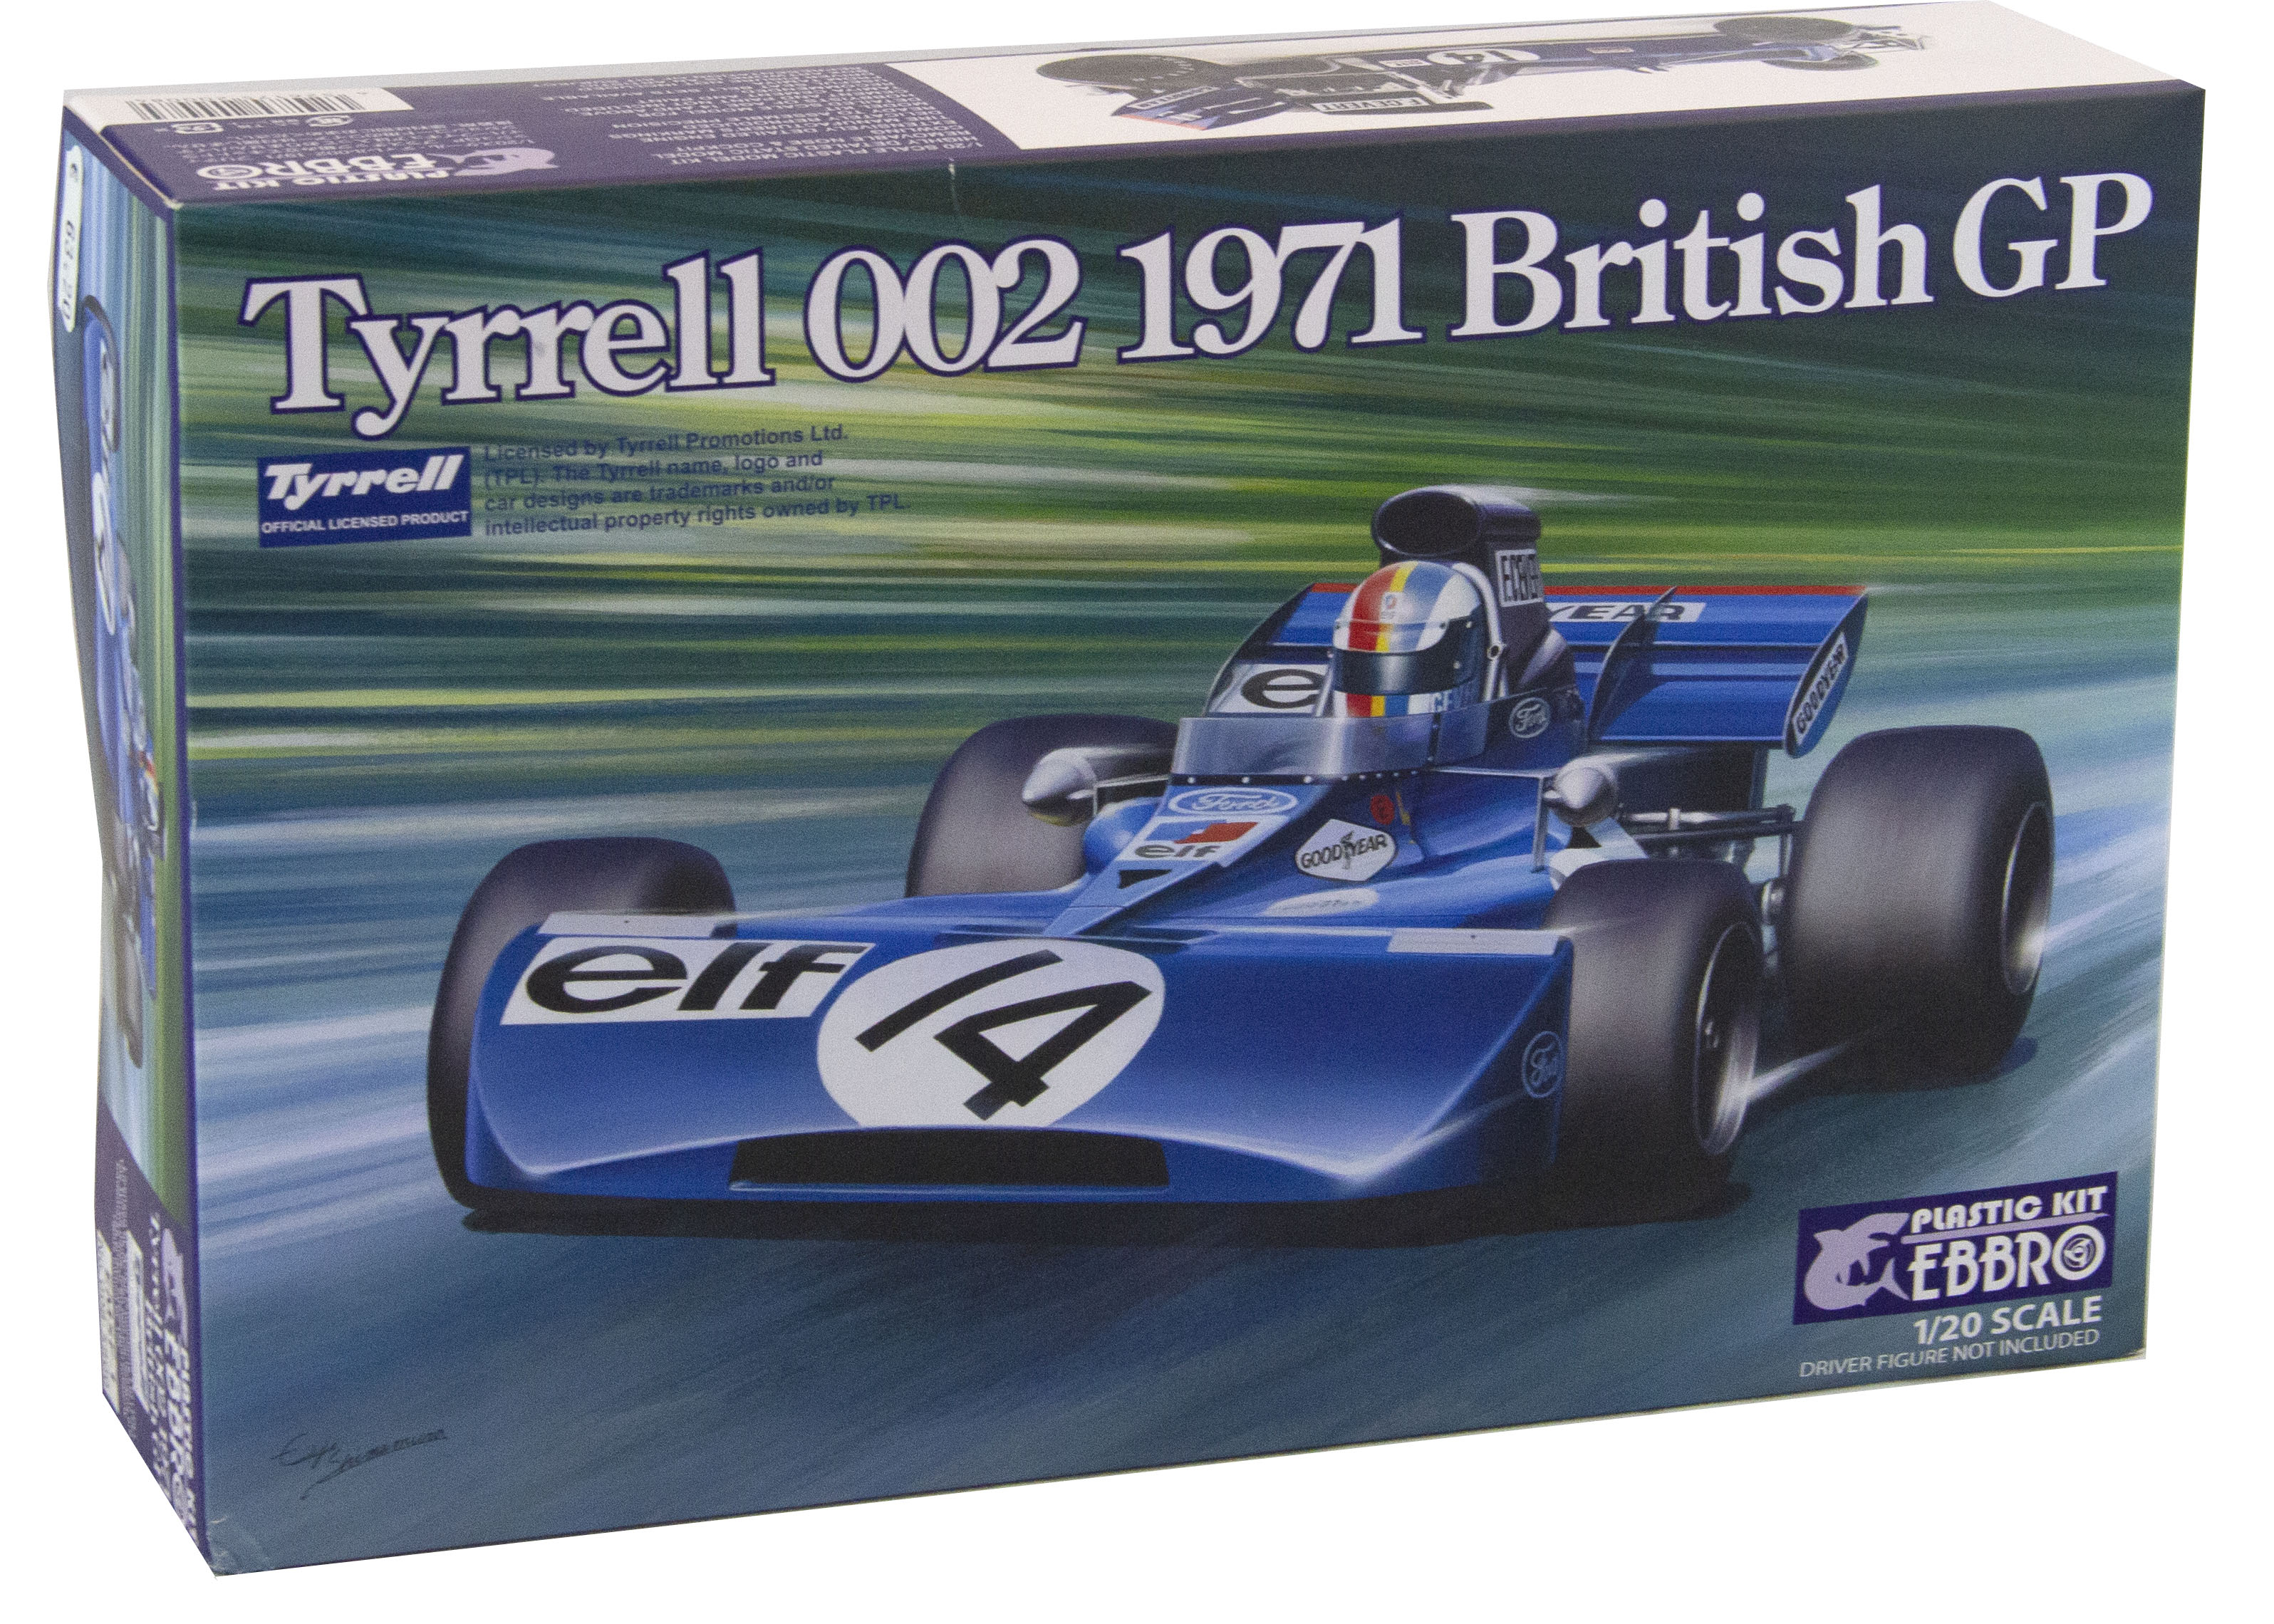 Kit Auto f1 Tyrrell 002  1971 British Gp - 1/20